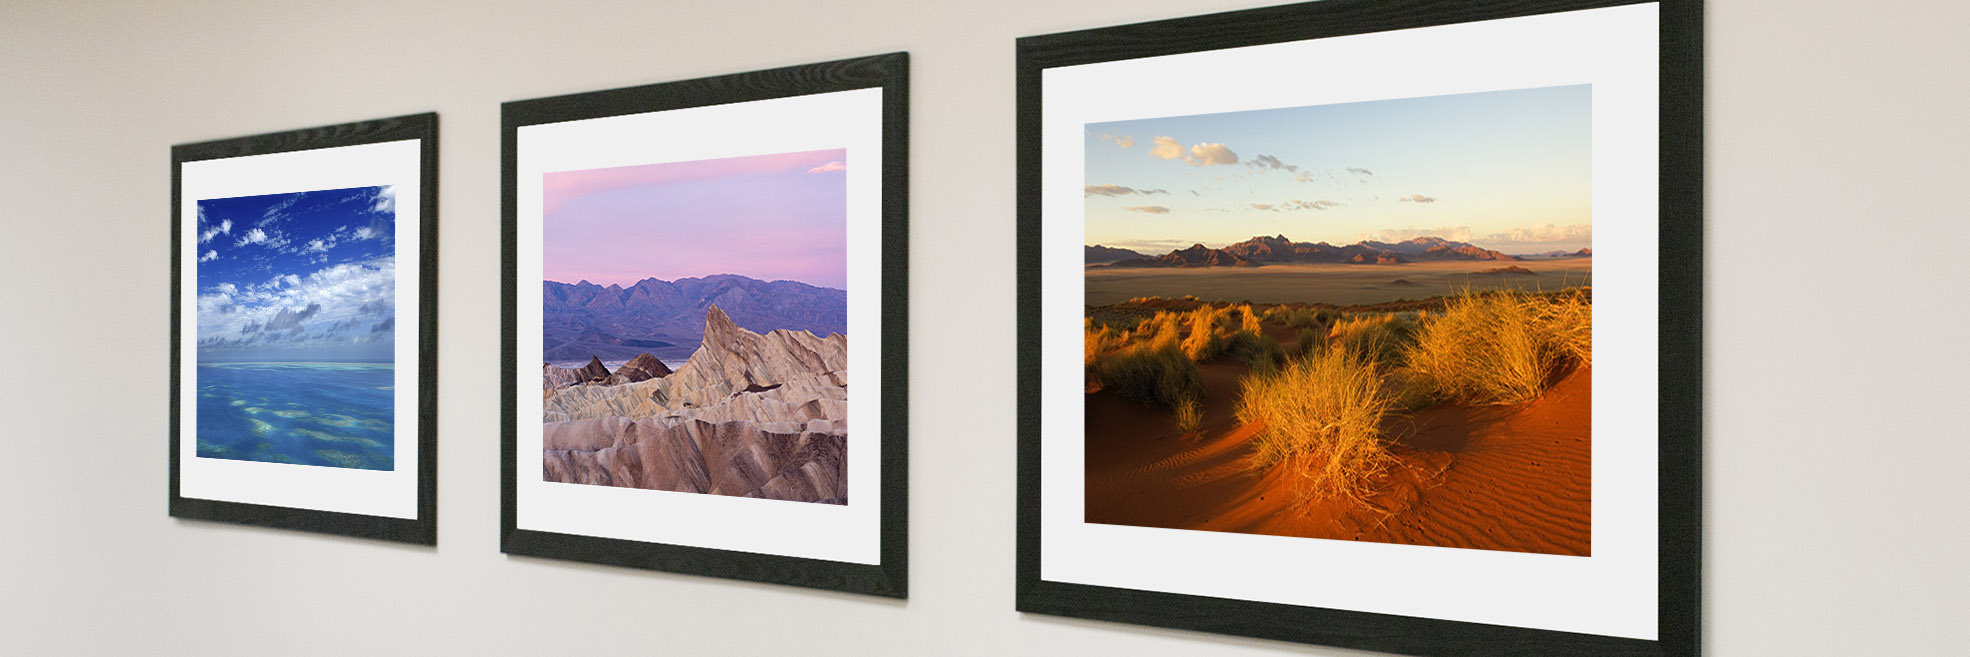 Office art ideas sample artwork portfolios for your office or other large spaces